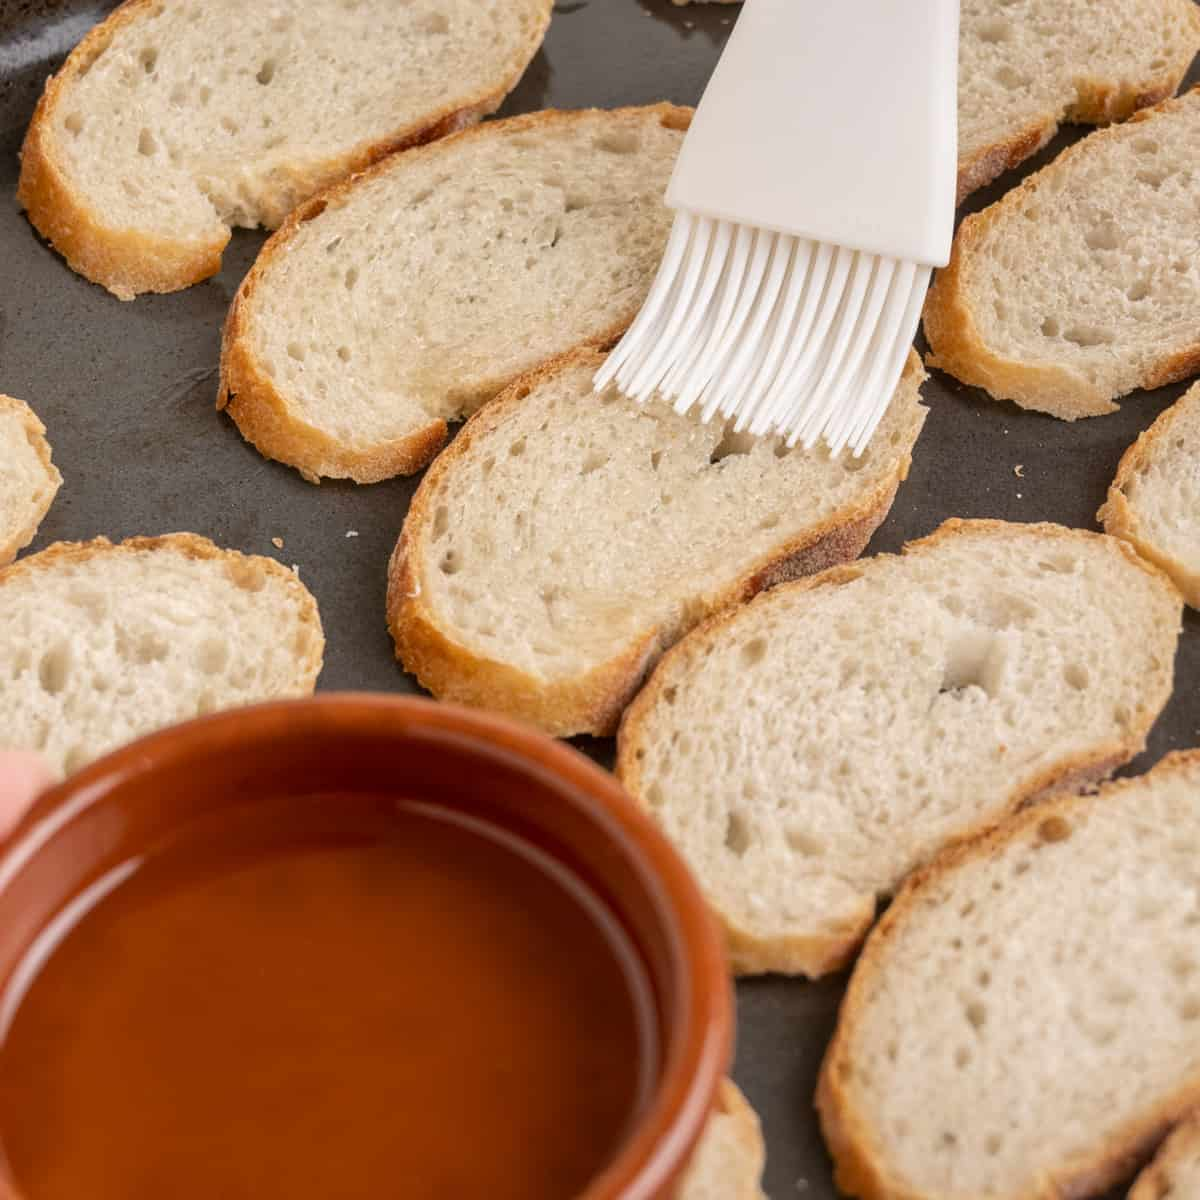 The thin slices of bread spread out on a baking tray are brushed with olive oil.